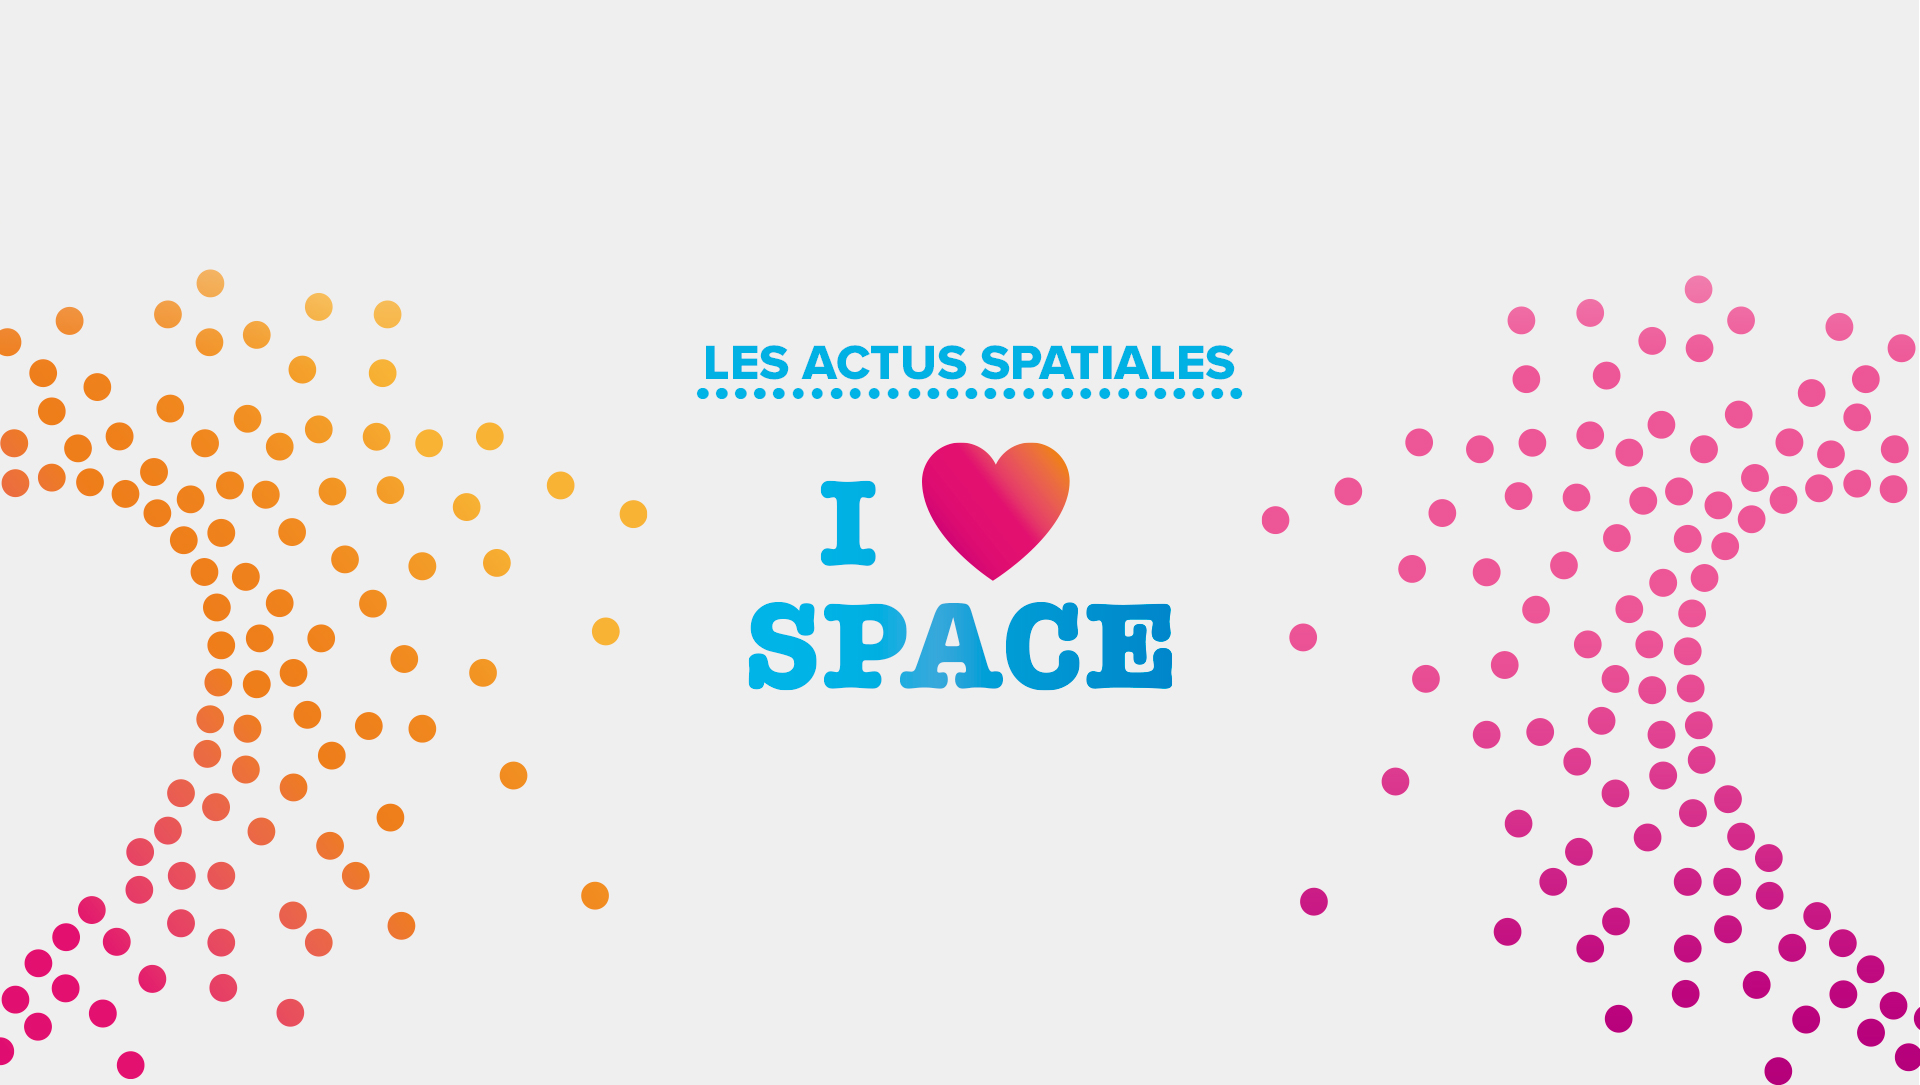 I love space - Les actus spatiales